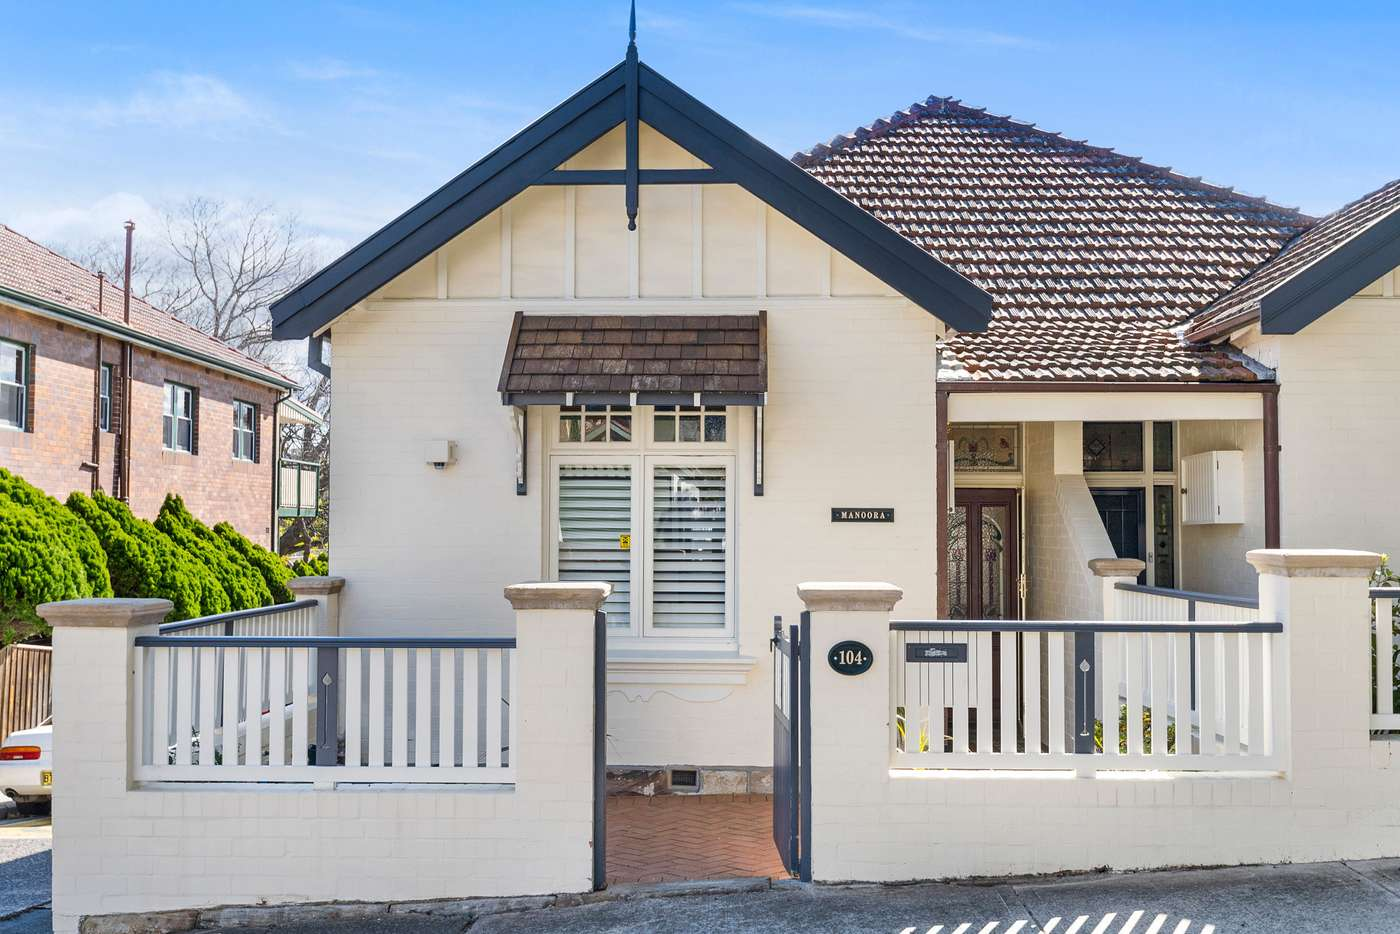 Main view of Homely house listing, 104 Shadforth Street, Mosman NSW 2088